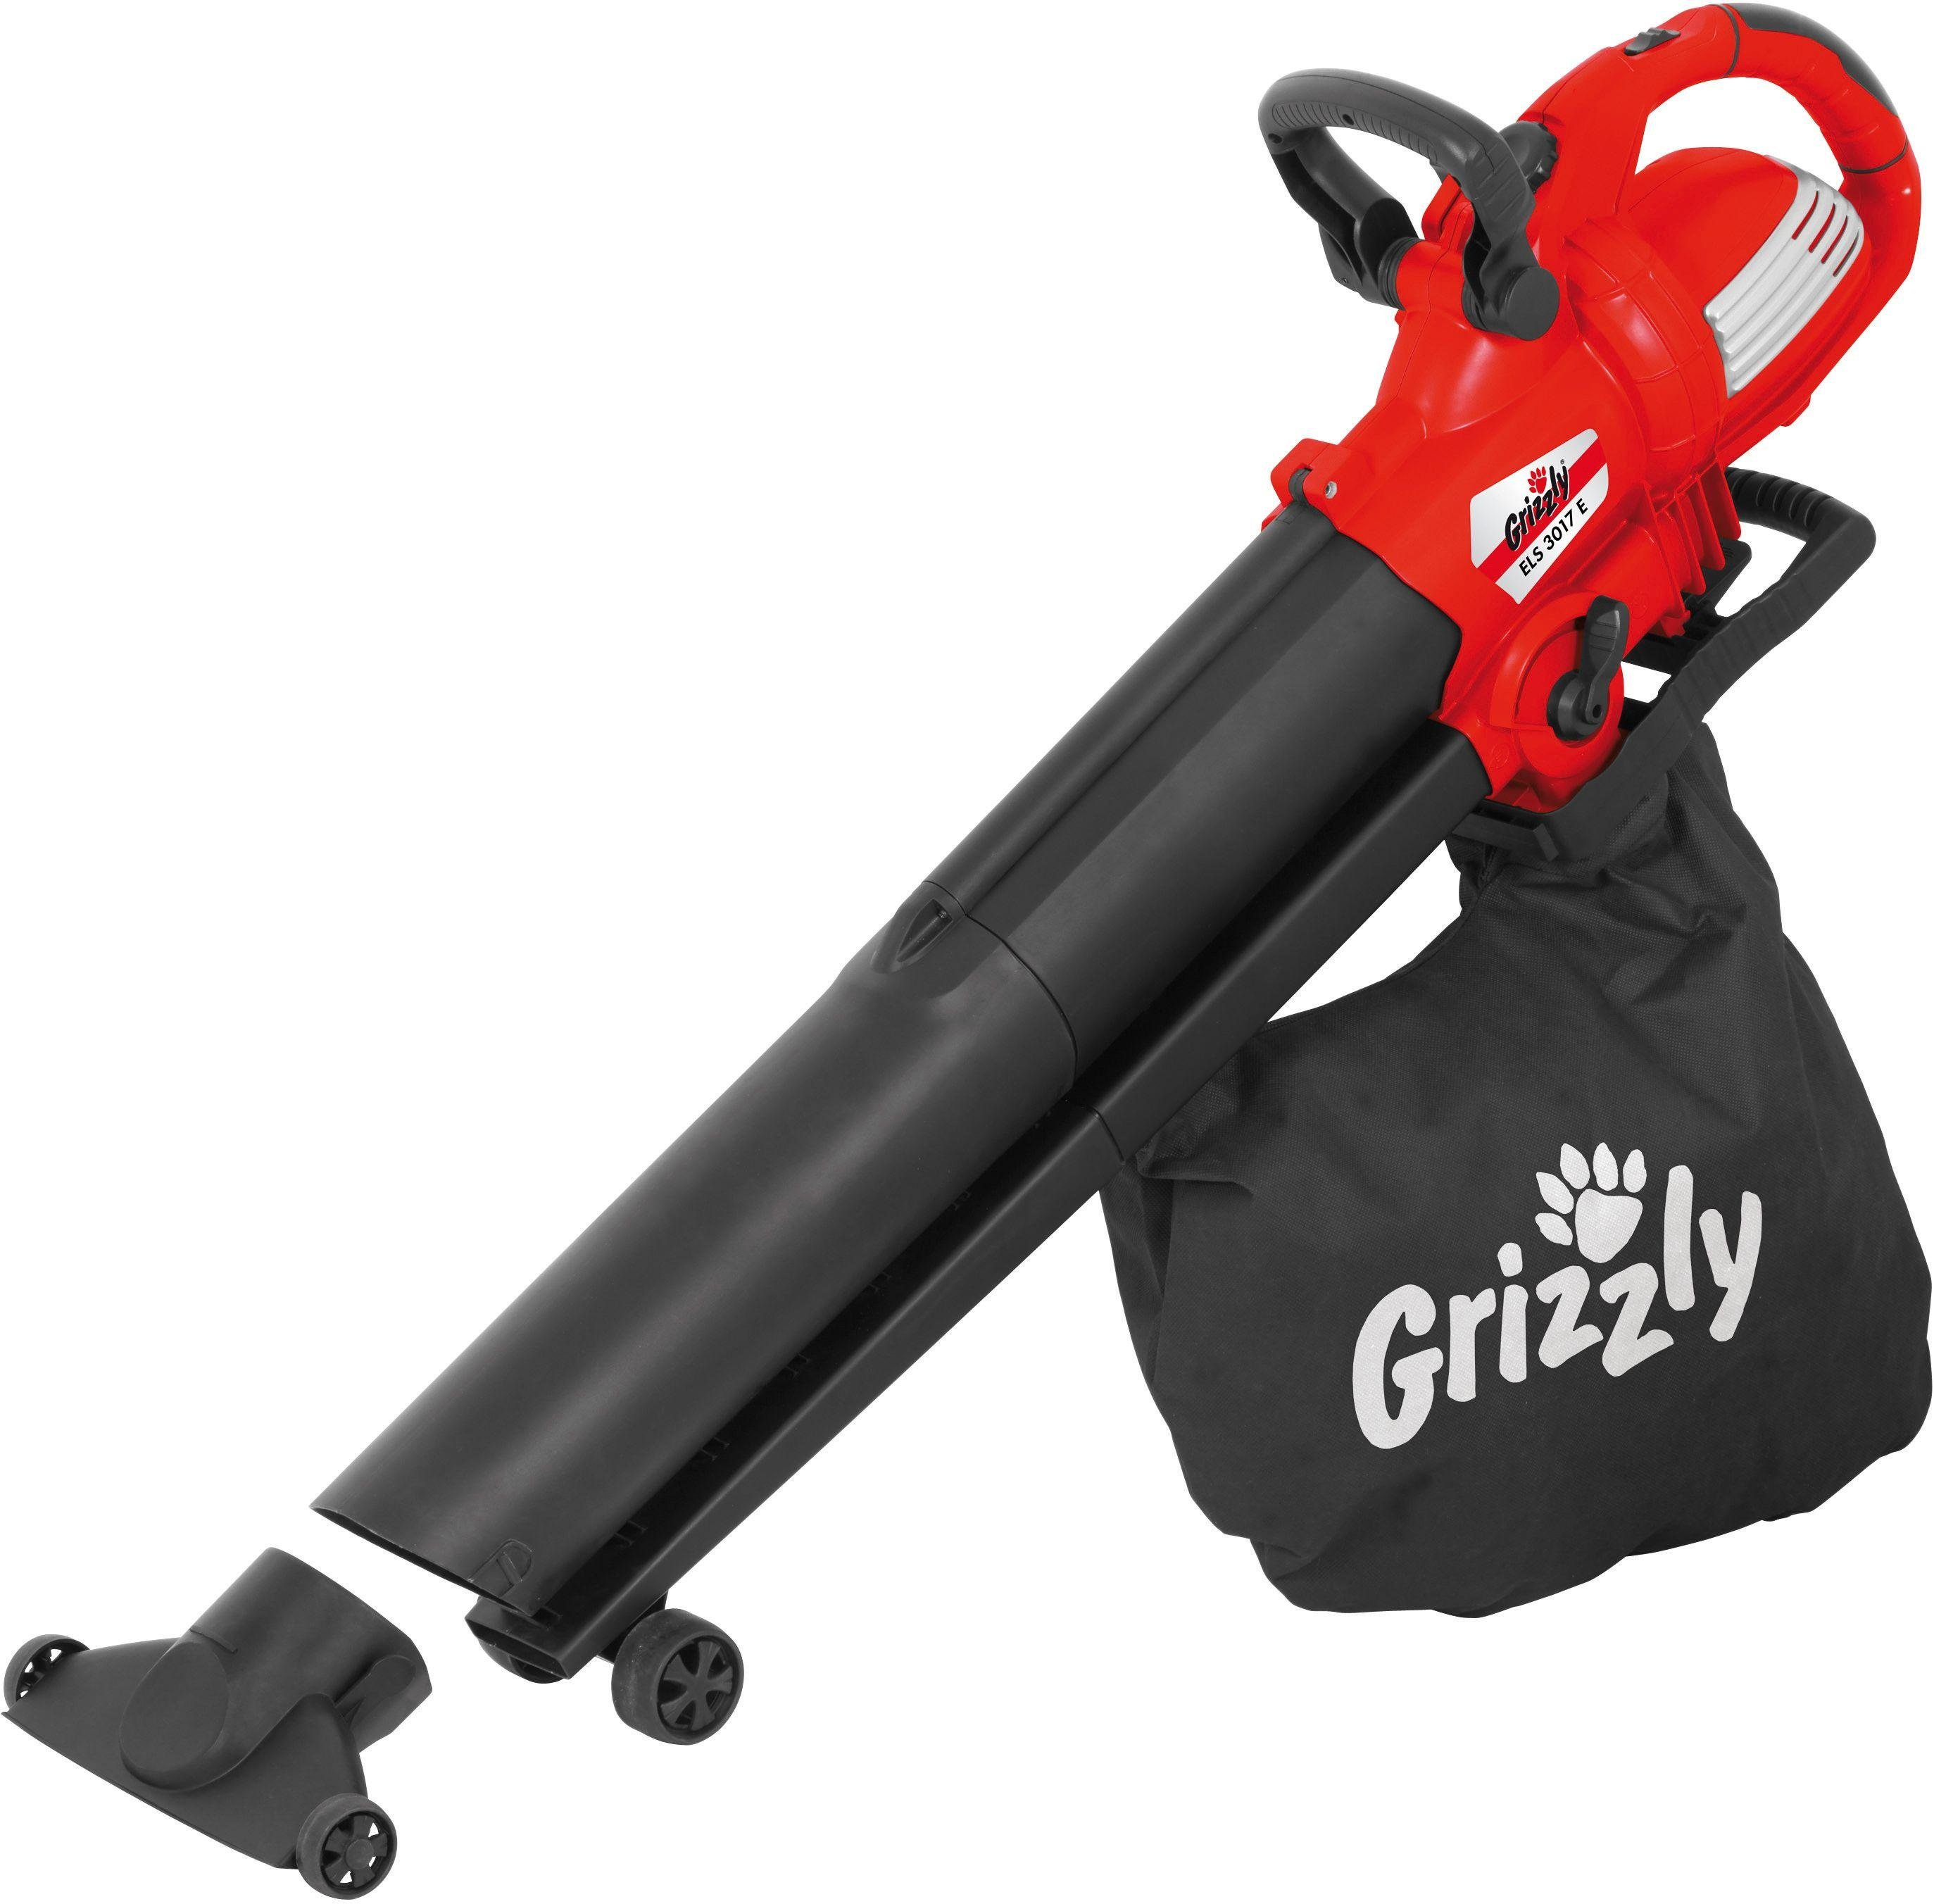 grizzly tools els 3017e corded leaf blower and vac 3000w. Black Bedroom Furniture Sets. Home Design Ideas